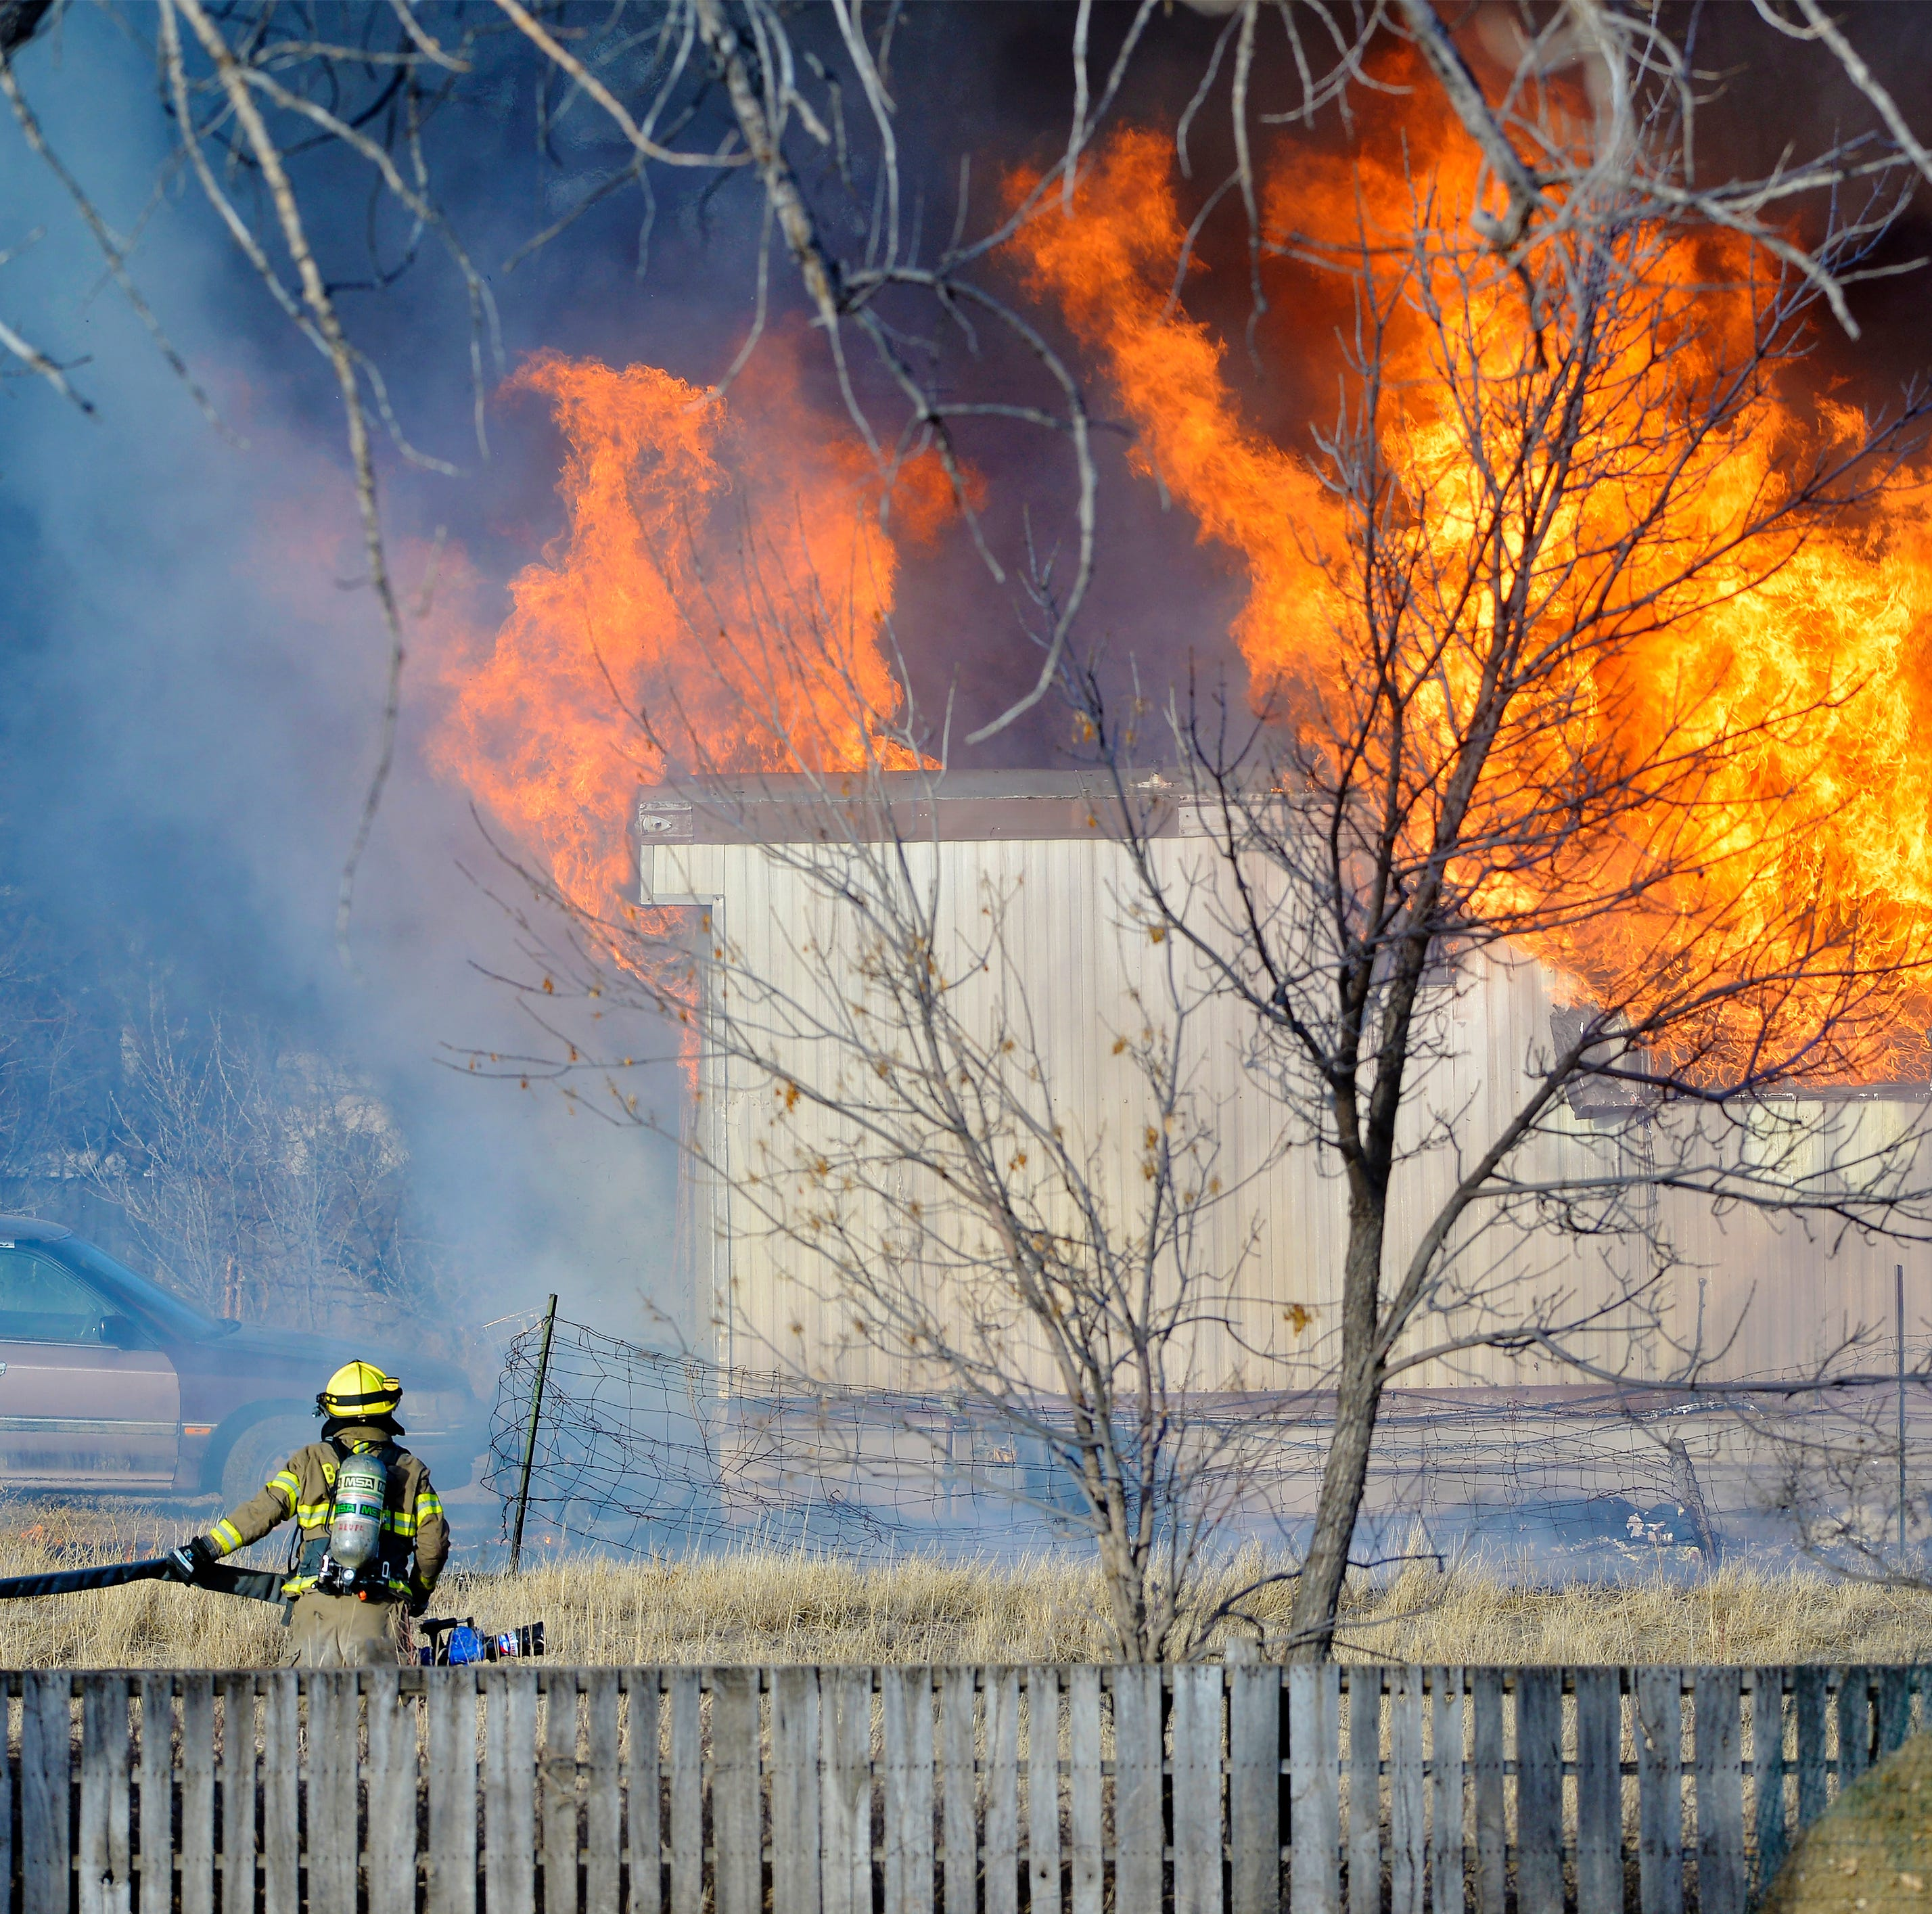 Breaking news: Fire destroys Central West area trailer house